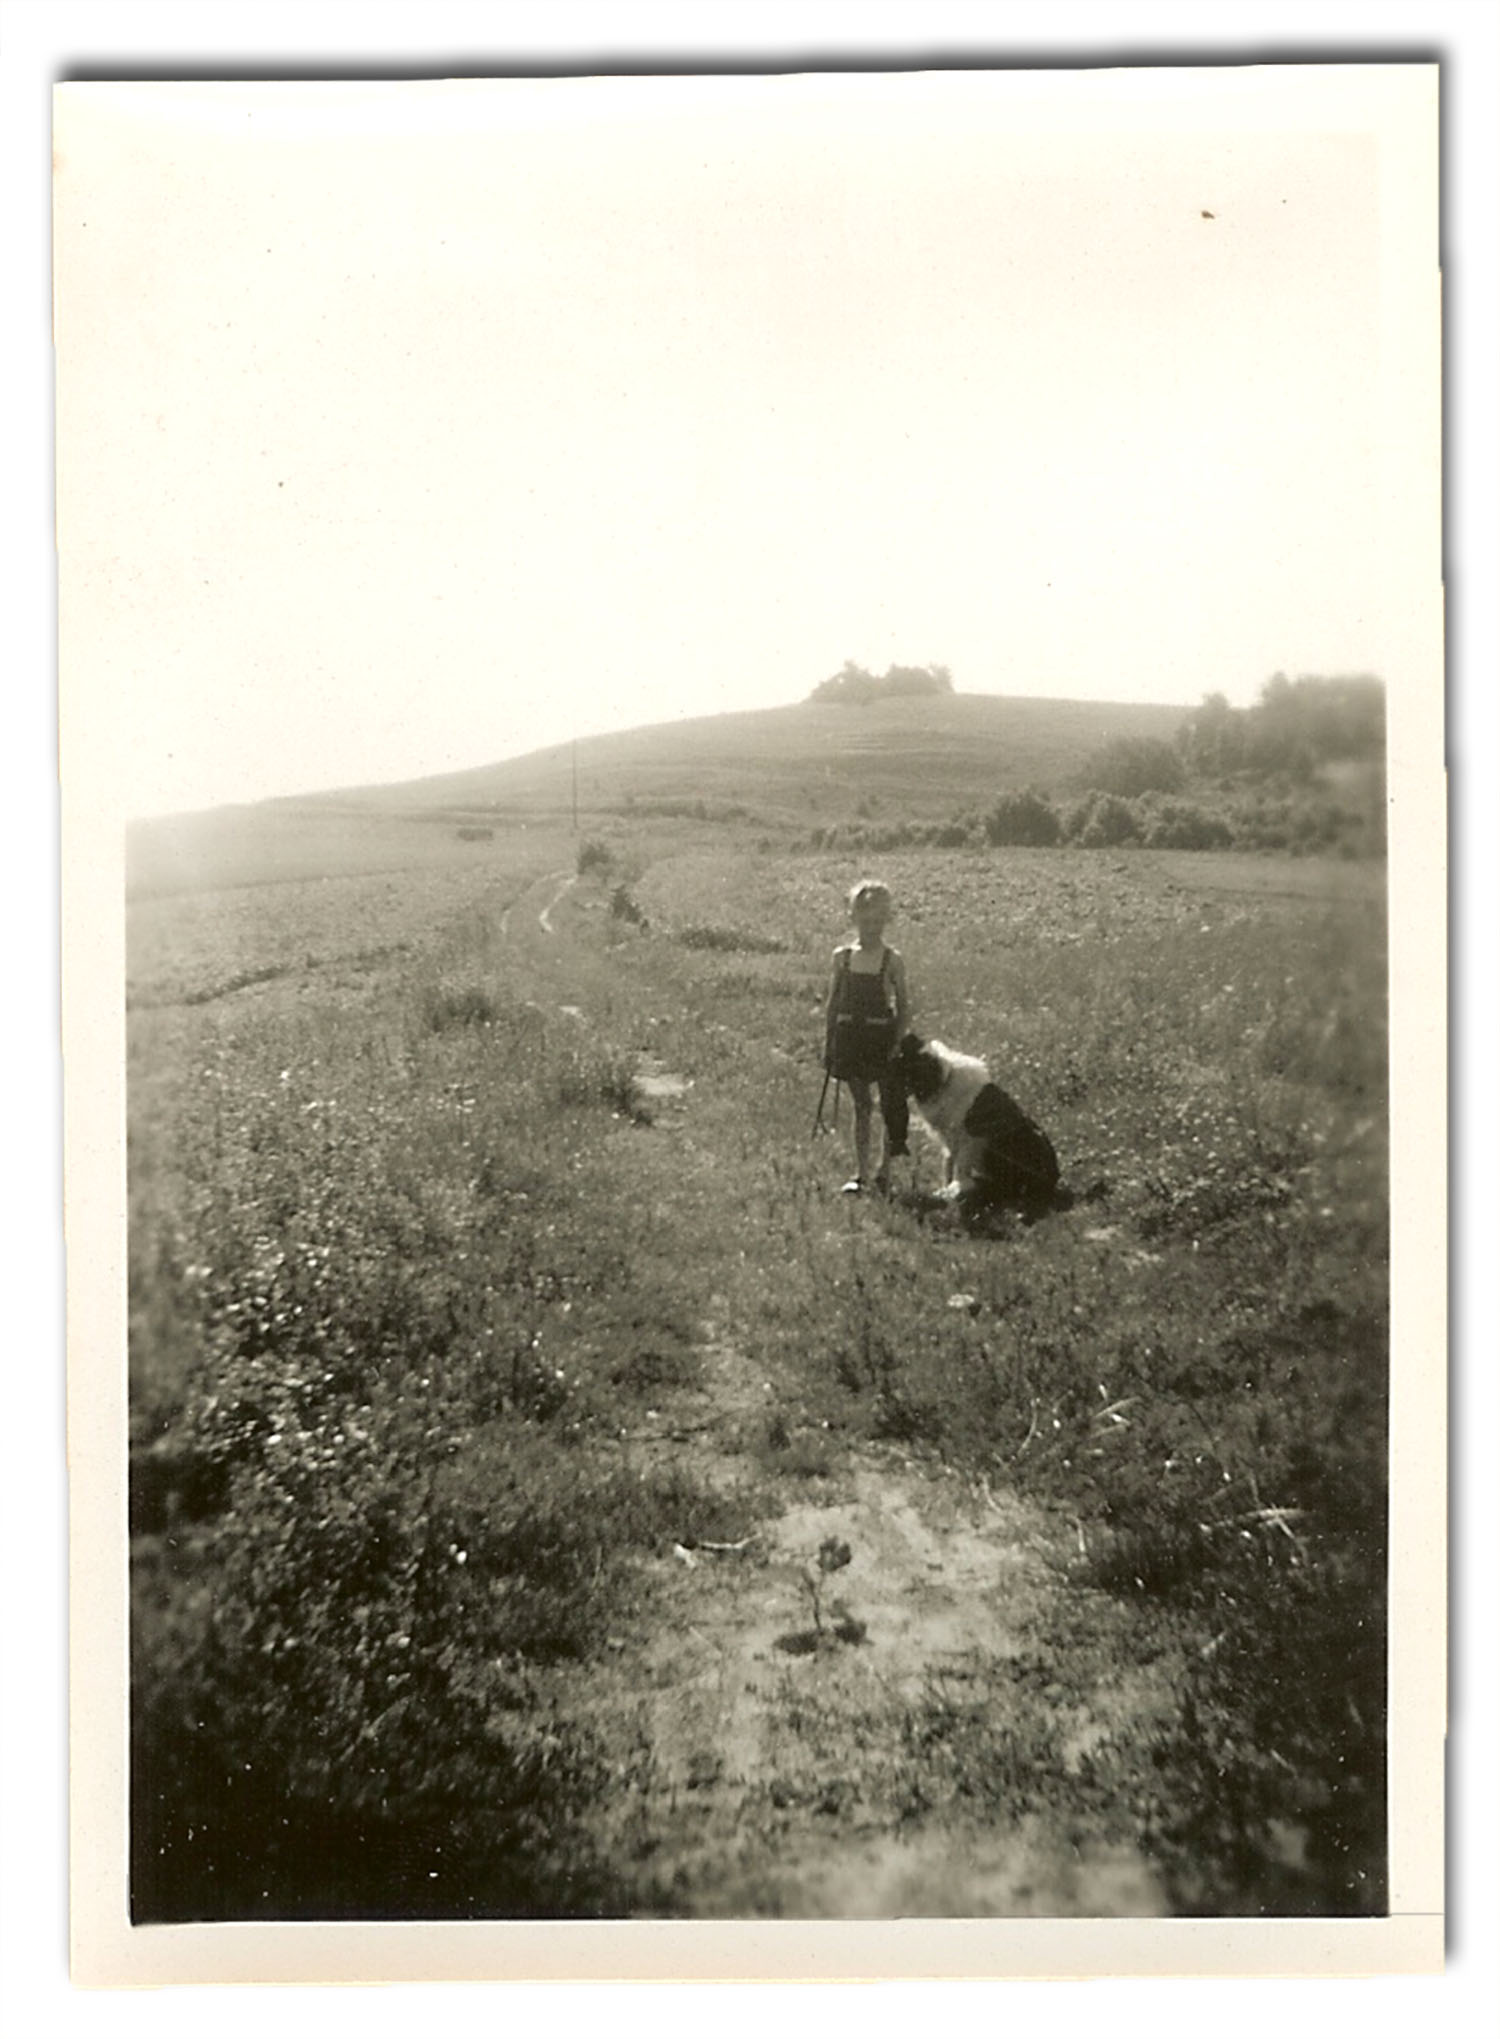 Jörgen together with the dog Lizzi. The bronze age grave Ornahögen is seen in the background.